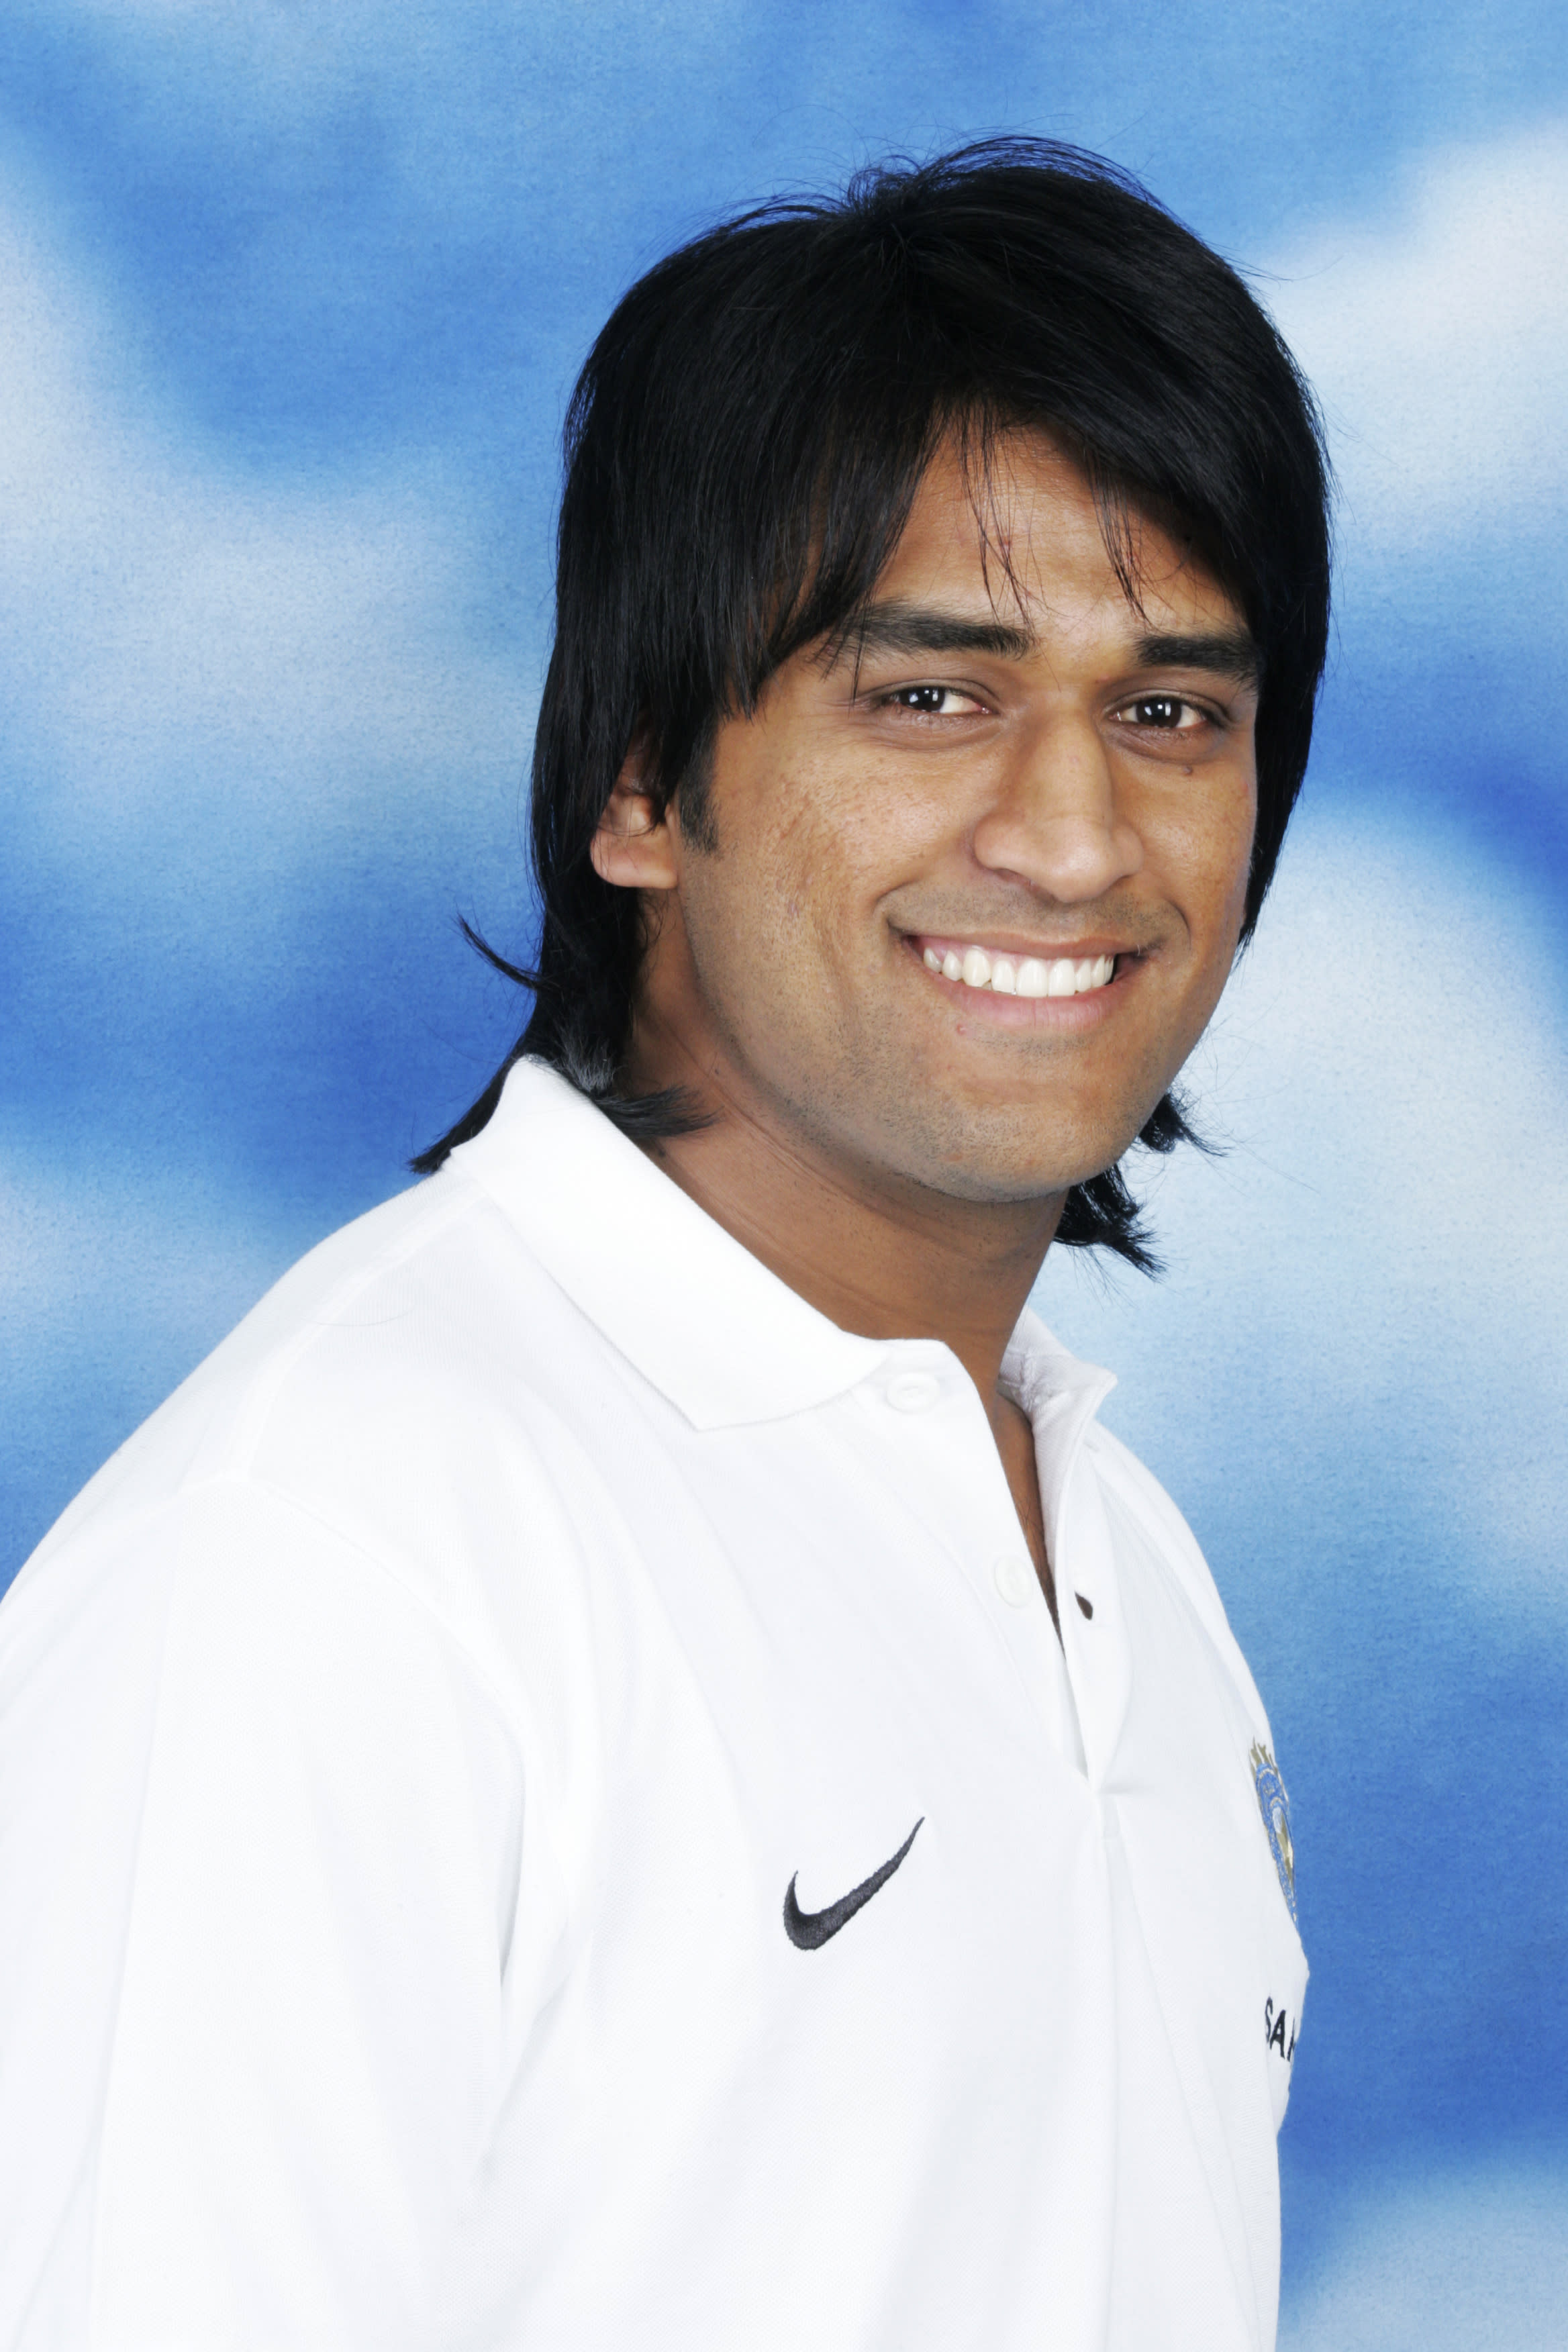 Dhoni's hairstyle over the years